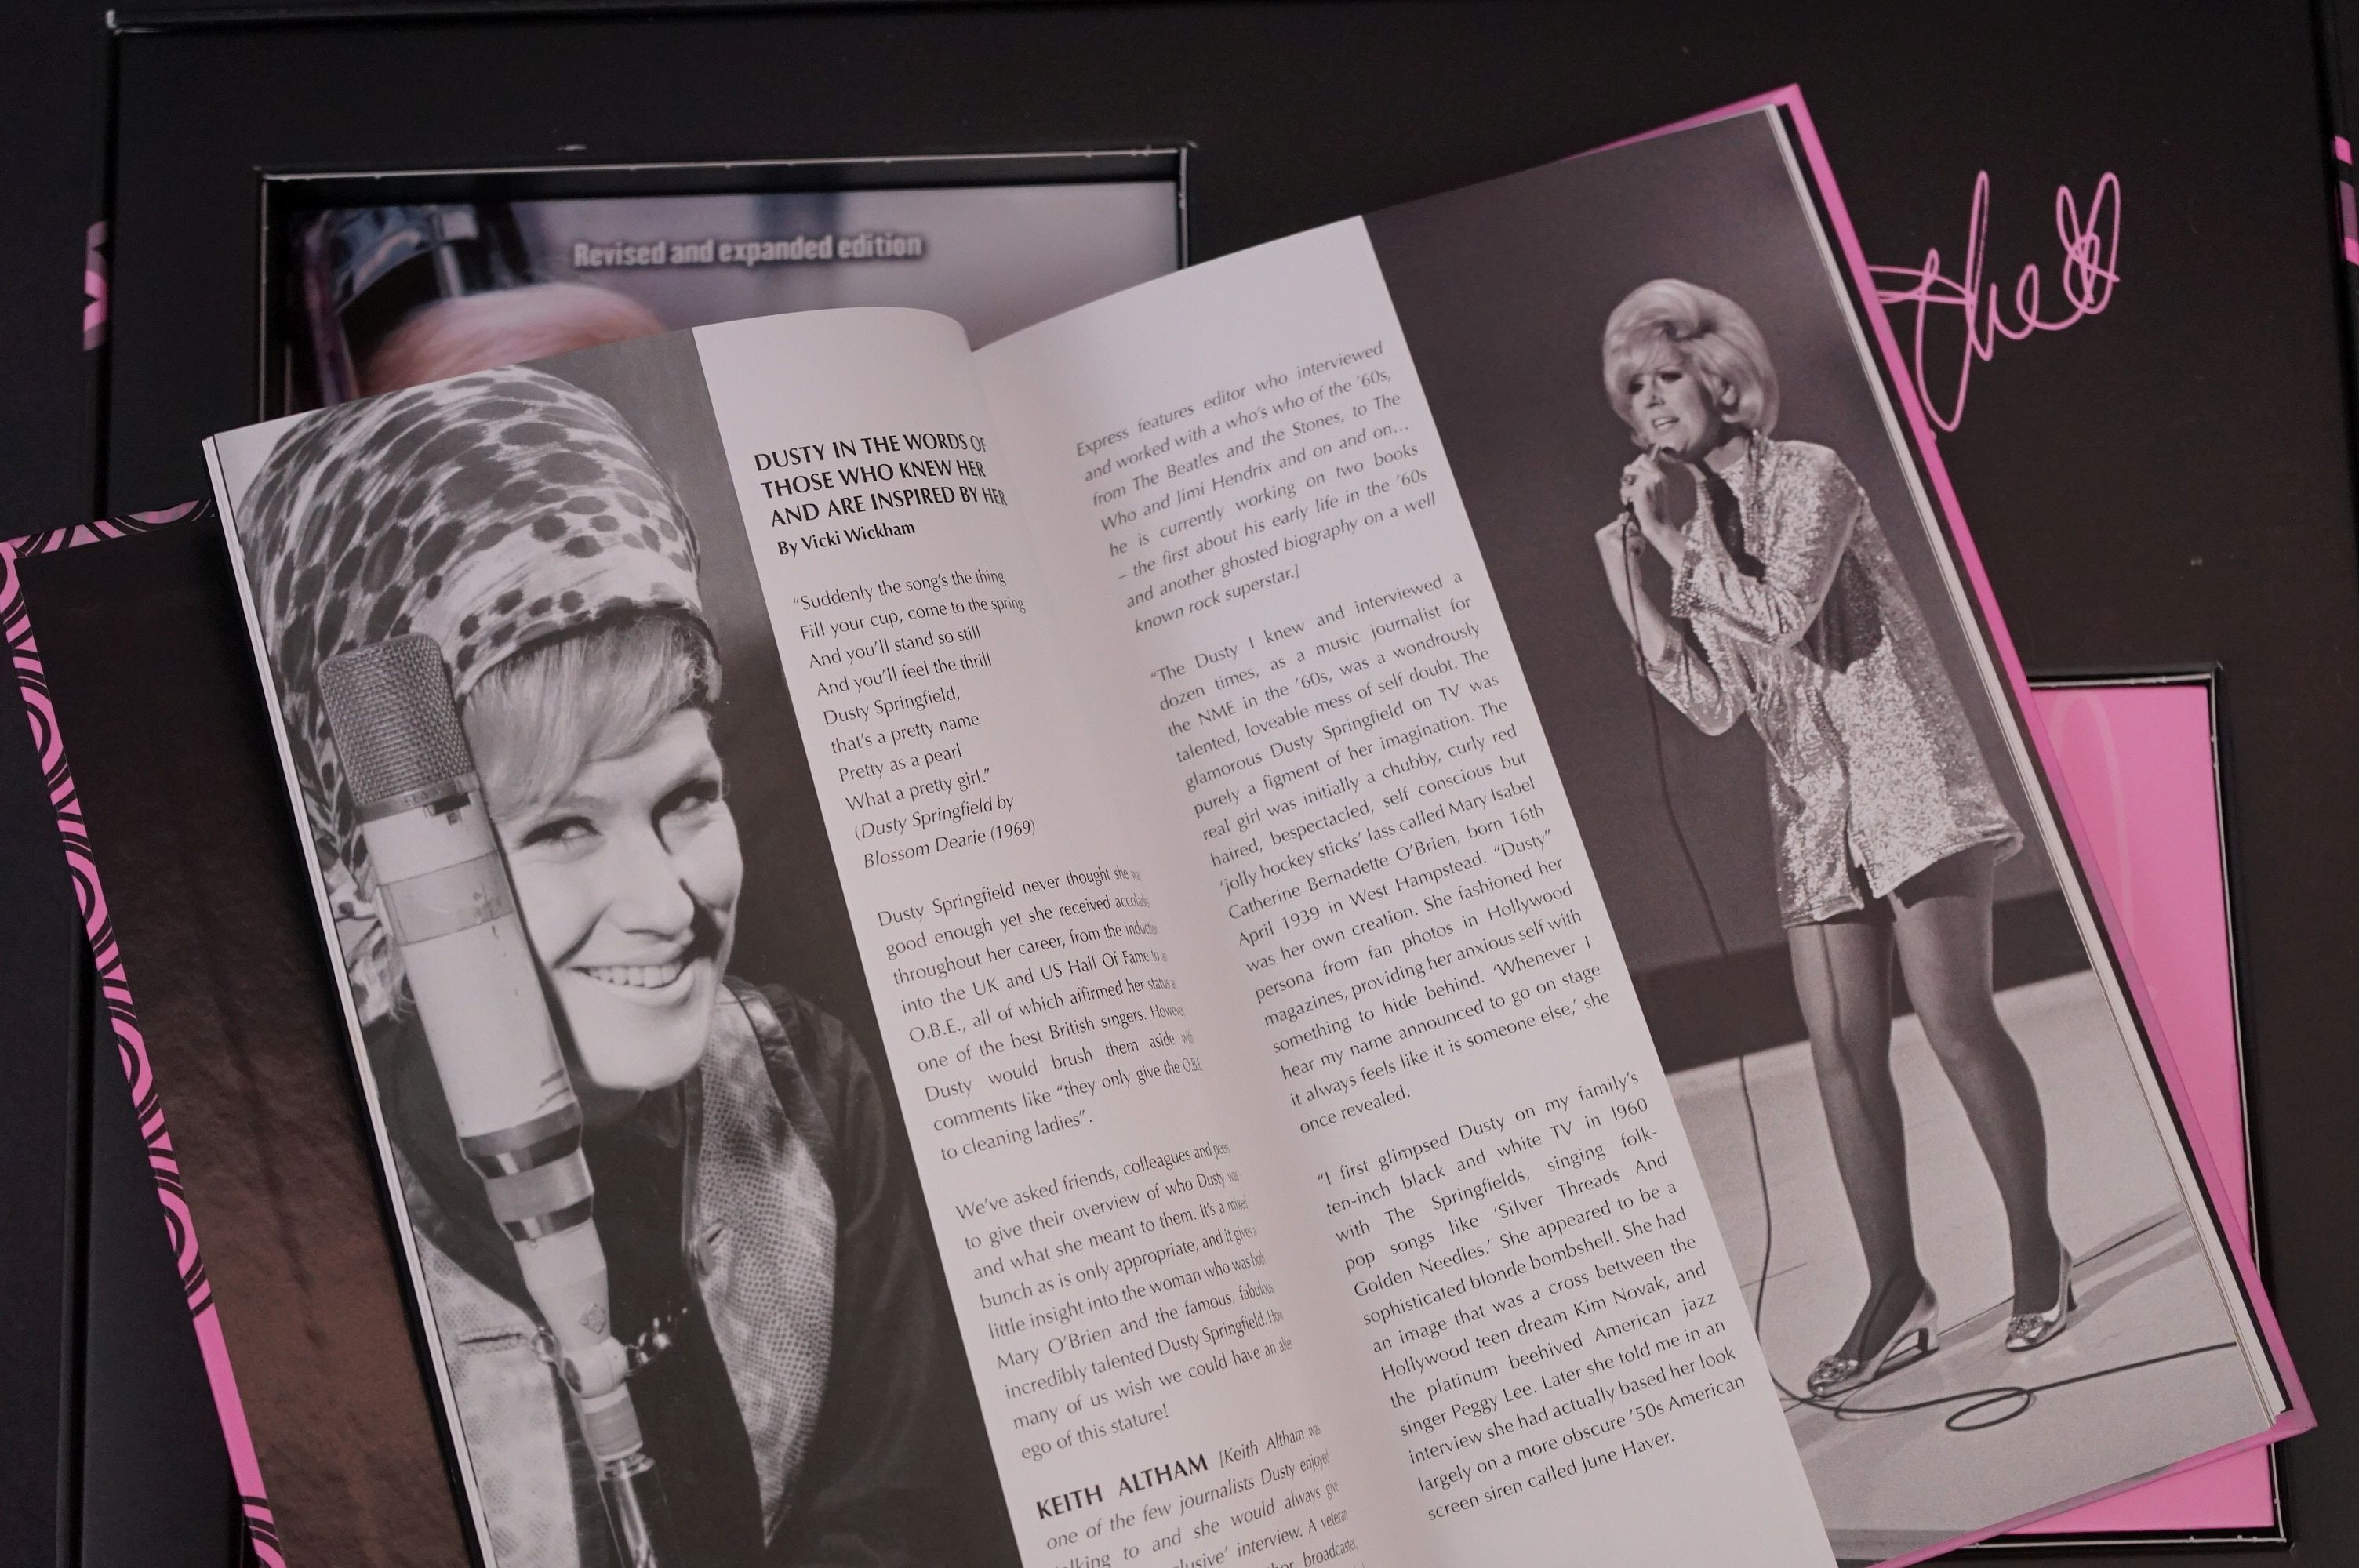 CD / DVD - Dusty Springfield Goin' Back The Definitive Box Set, ltd edn number 00128, ex with some - Image 5 of 8